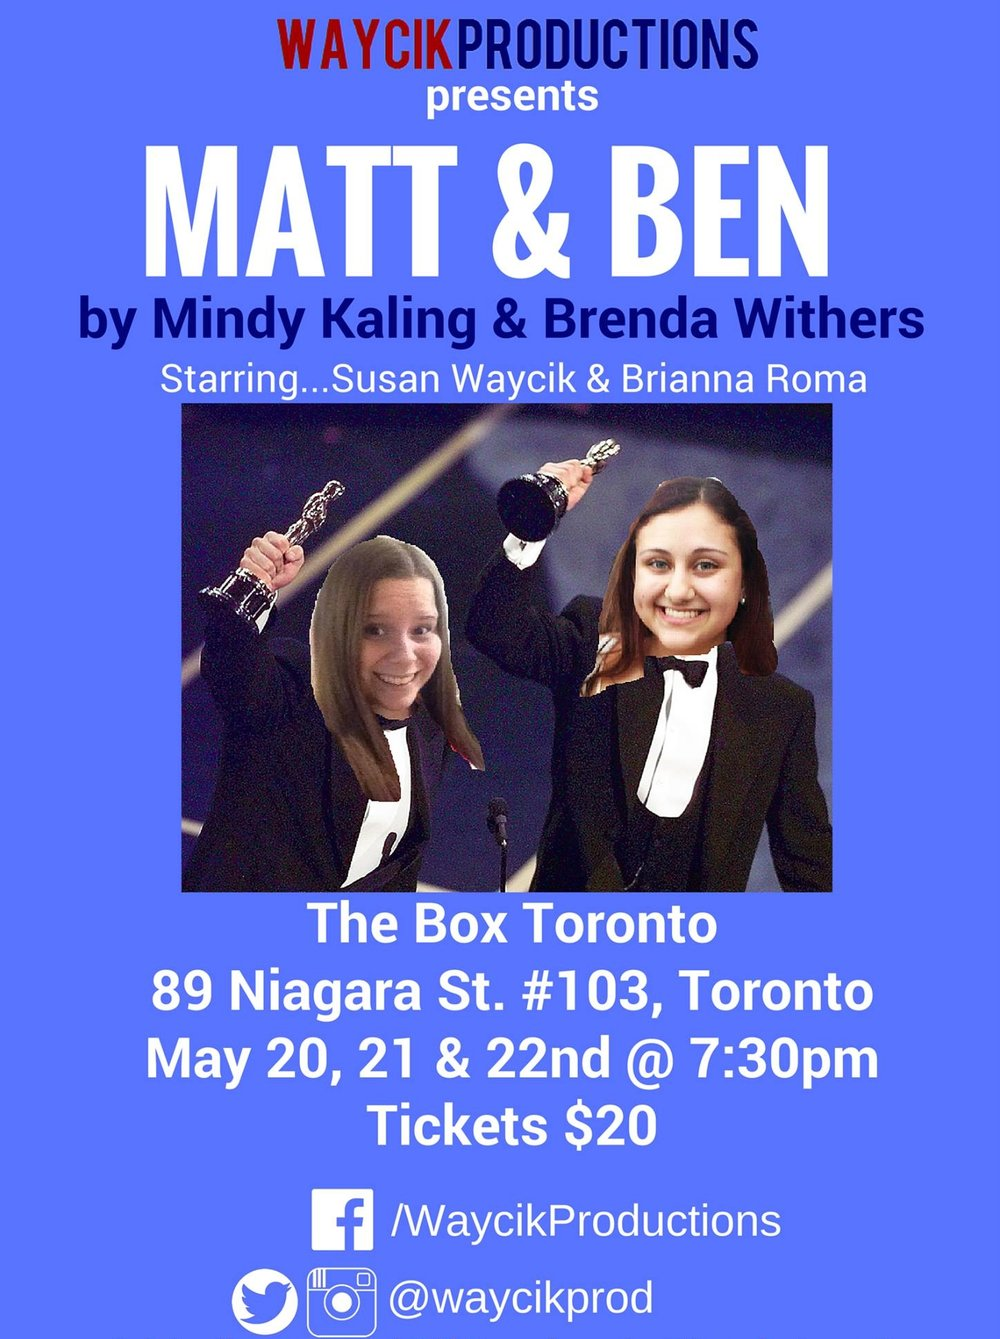 Matt & Ben - May 20, 21 & 22, 2016 at the Box TorontoWaycik Productions' inaugural production, Matt & Ben a comedic play by Mindy Kaling and Brenda Withers. Matt & Ben depicts its Hollywood golden boys – before J-Lo, before Gwyneth, before Project Greenlight, before Oscar […] before anyone actually gave a damn. When the screenplay for Good Will Hunting drops mysteriously from the heavens, the boys realize they're being tested by a Higher Power.